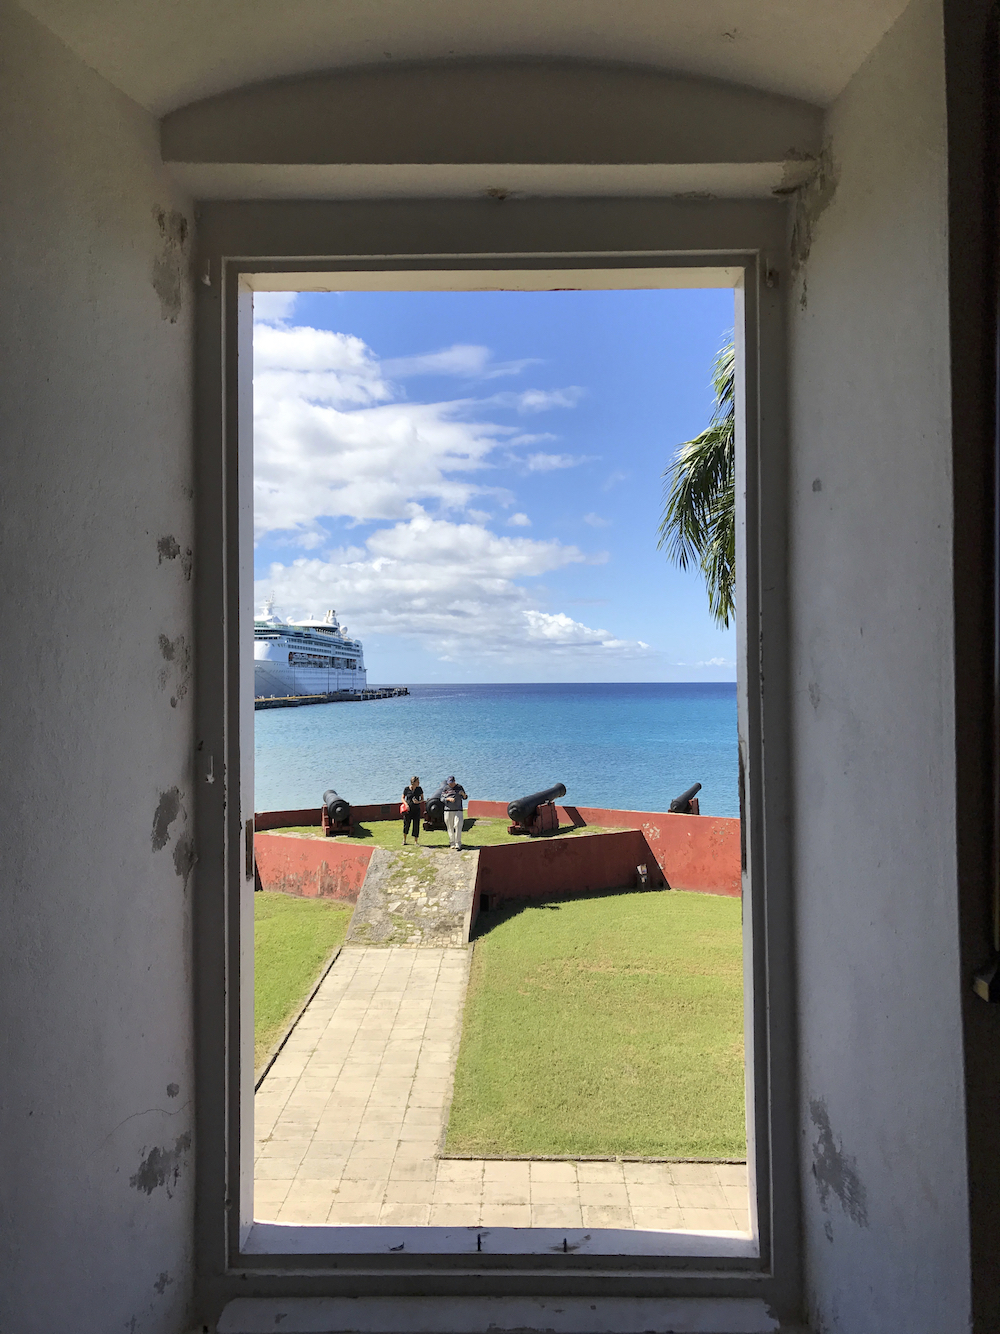 Take Five in St. Croix